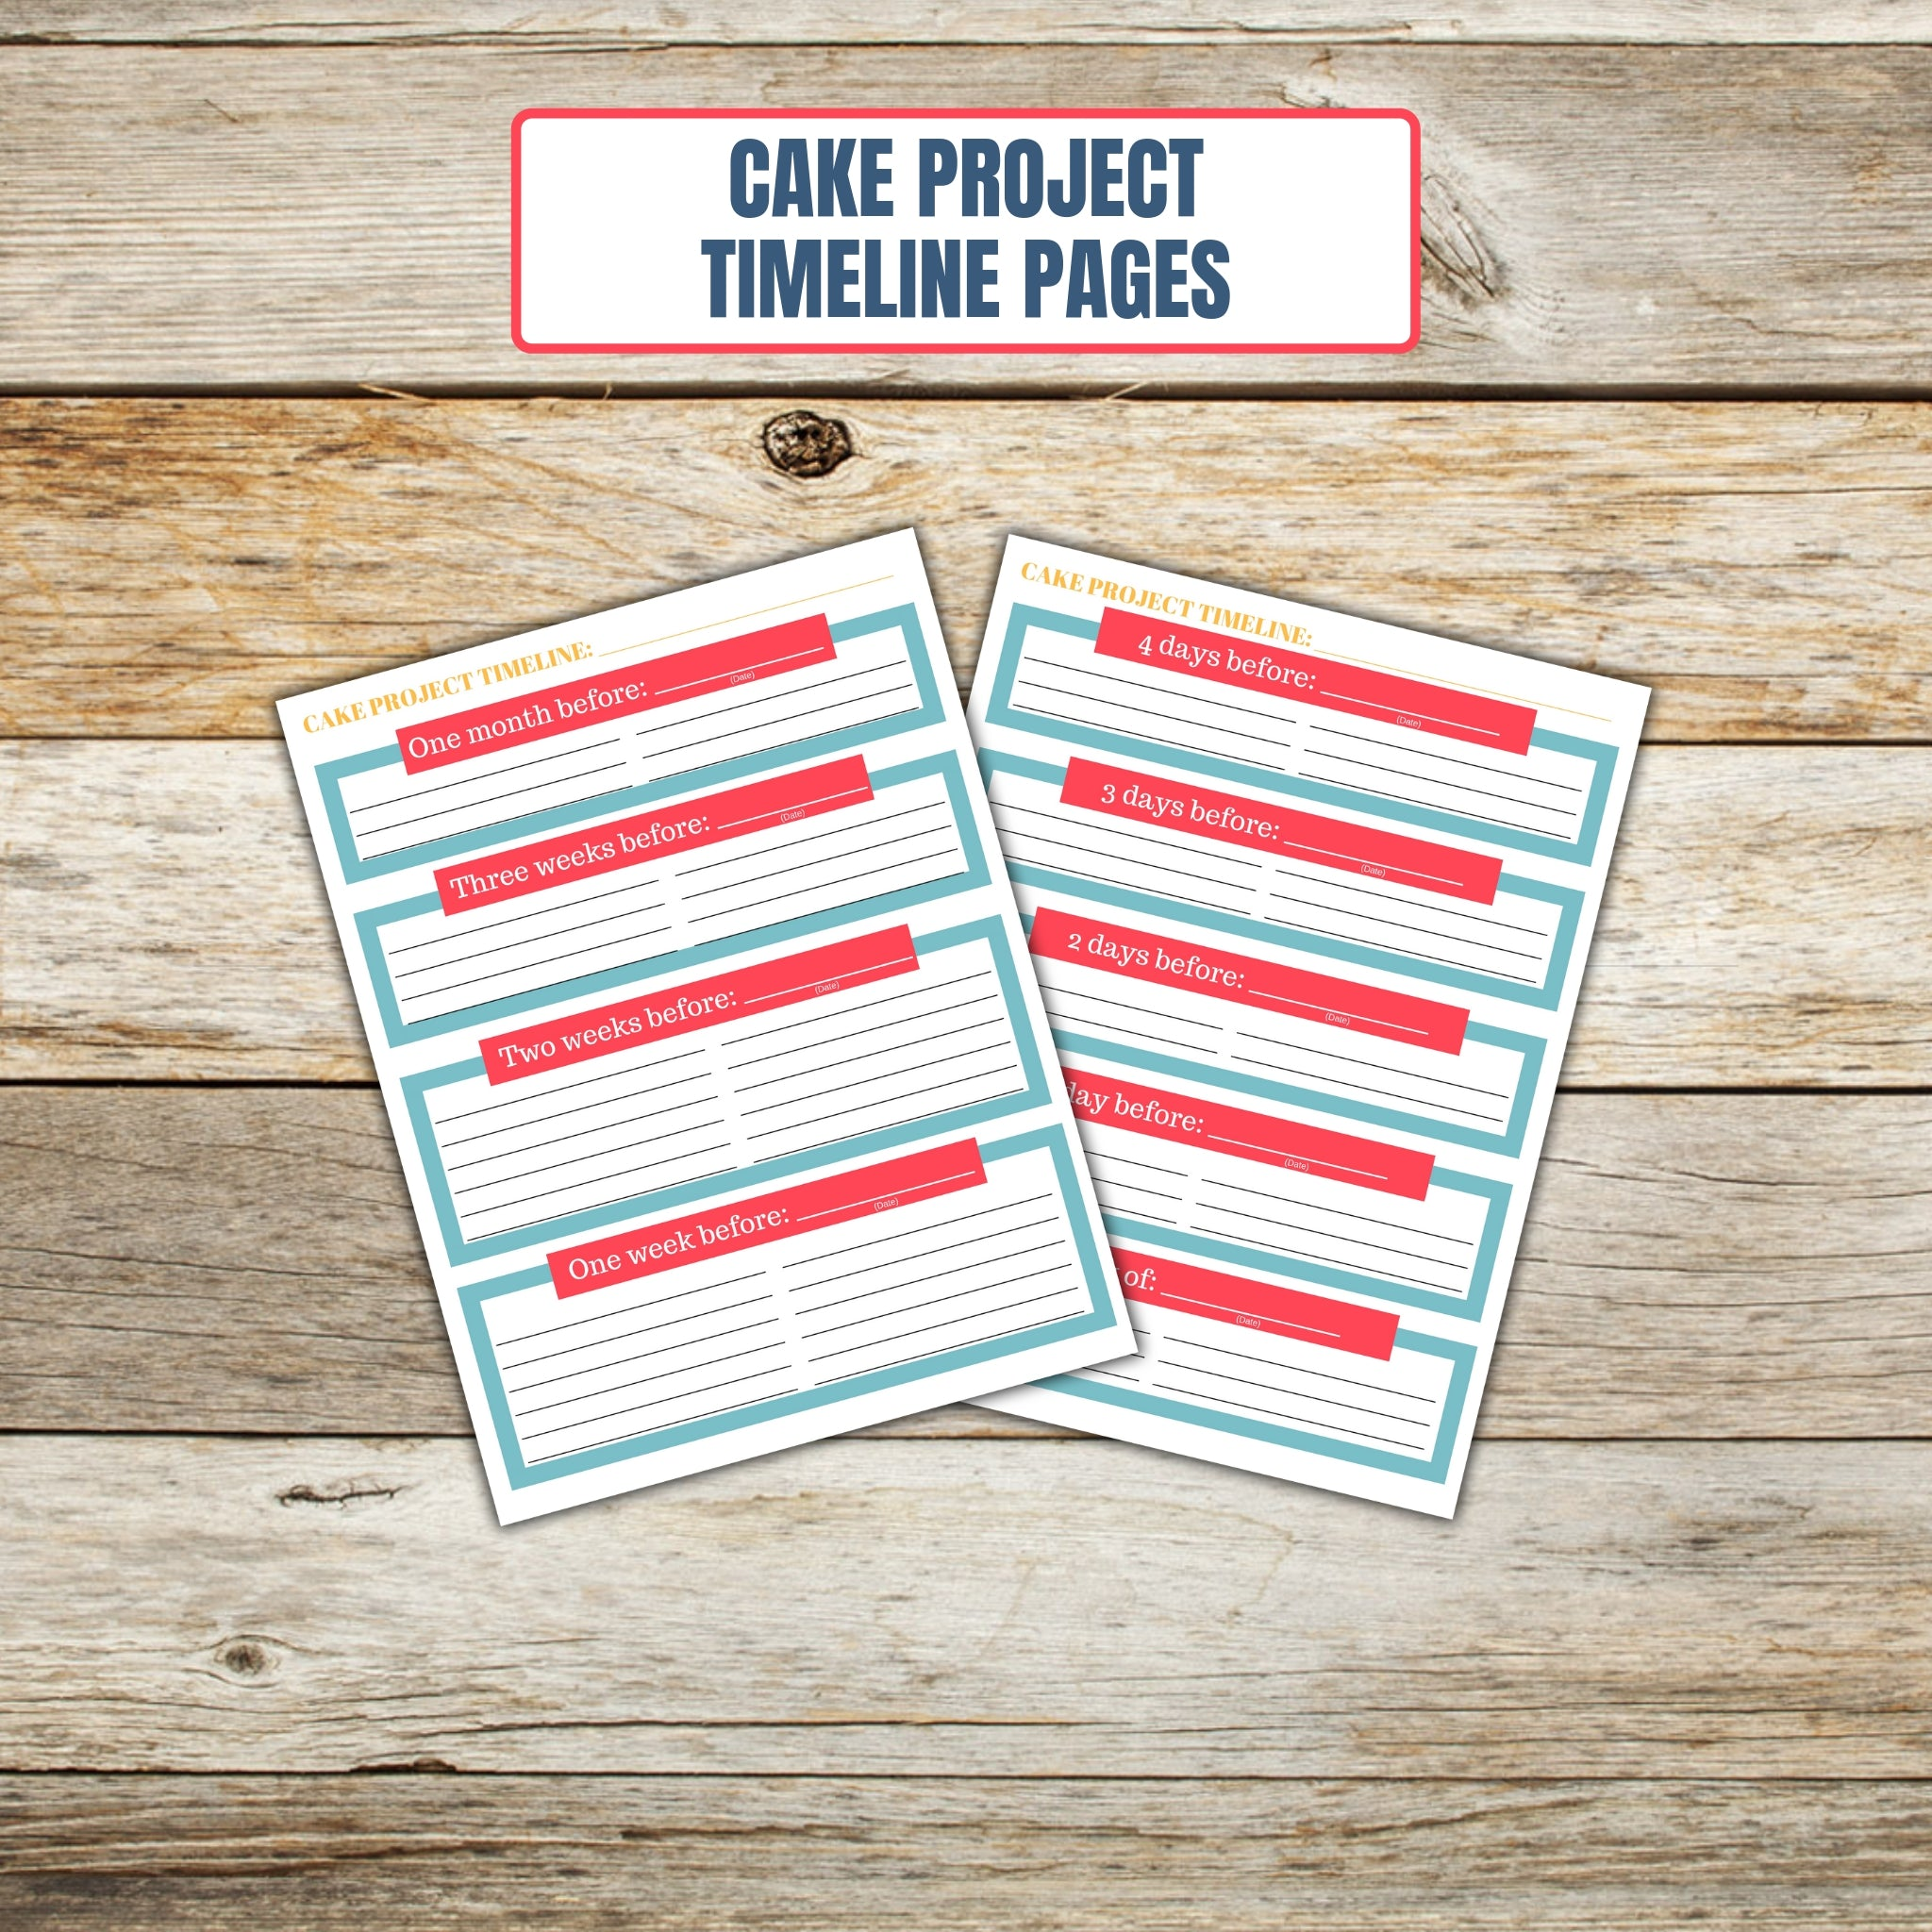 Ultimate Cake Project Printable Planner Geometric Design timeline page